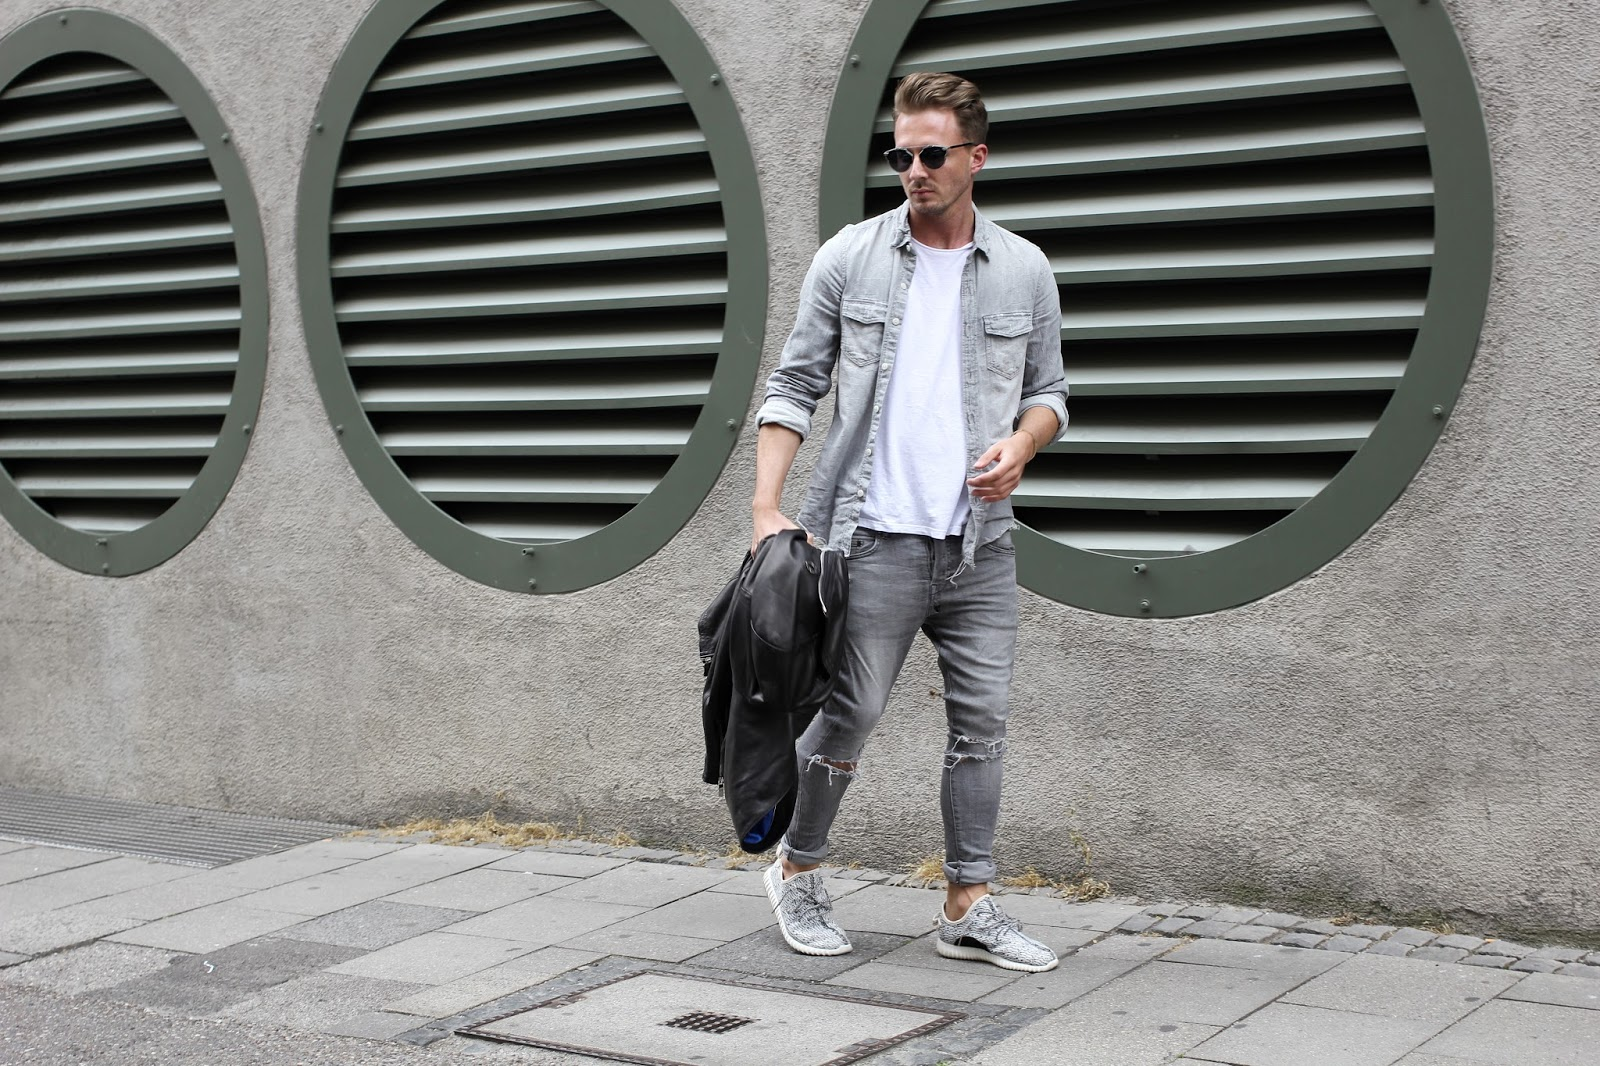 This Time I Am Going For Grey Denim It Is Easy And Goes Super Well With Any Kind Of Jackets Acessoires Or Shoes Take A Lot Hopefully Get Inspred